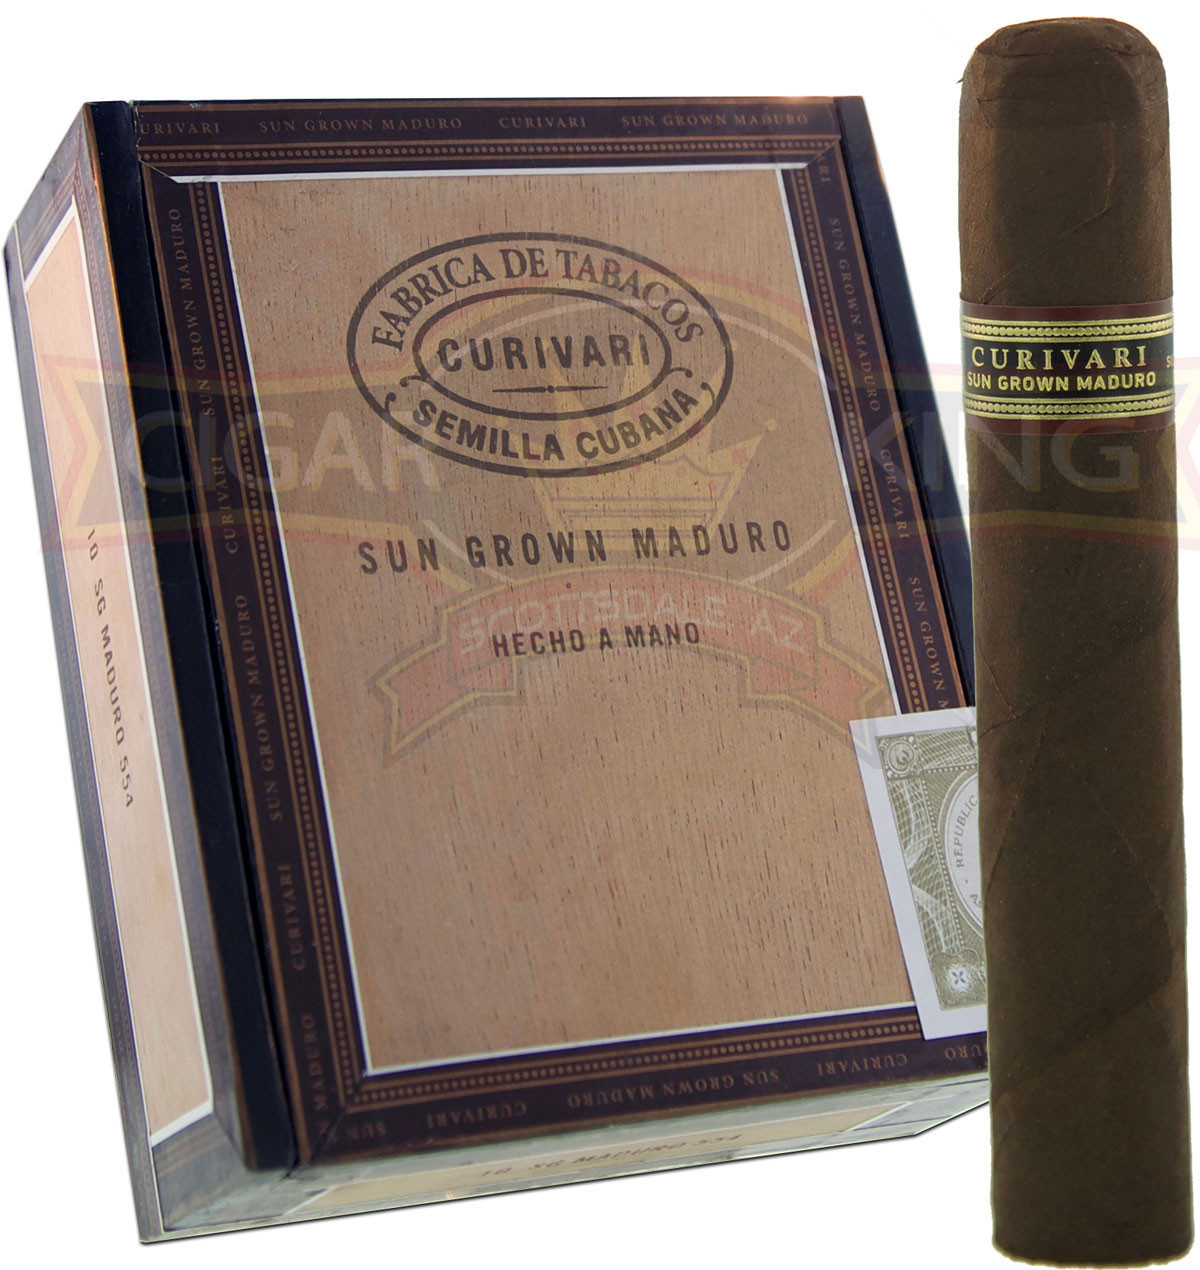 Curivari Sun Grown Maduro 554 (5x54 / Box of 10) + FREE SHIPPING ON YOUR ENTIRE ORDER!